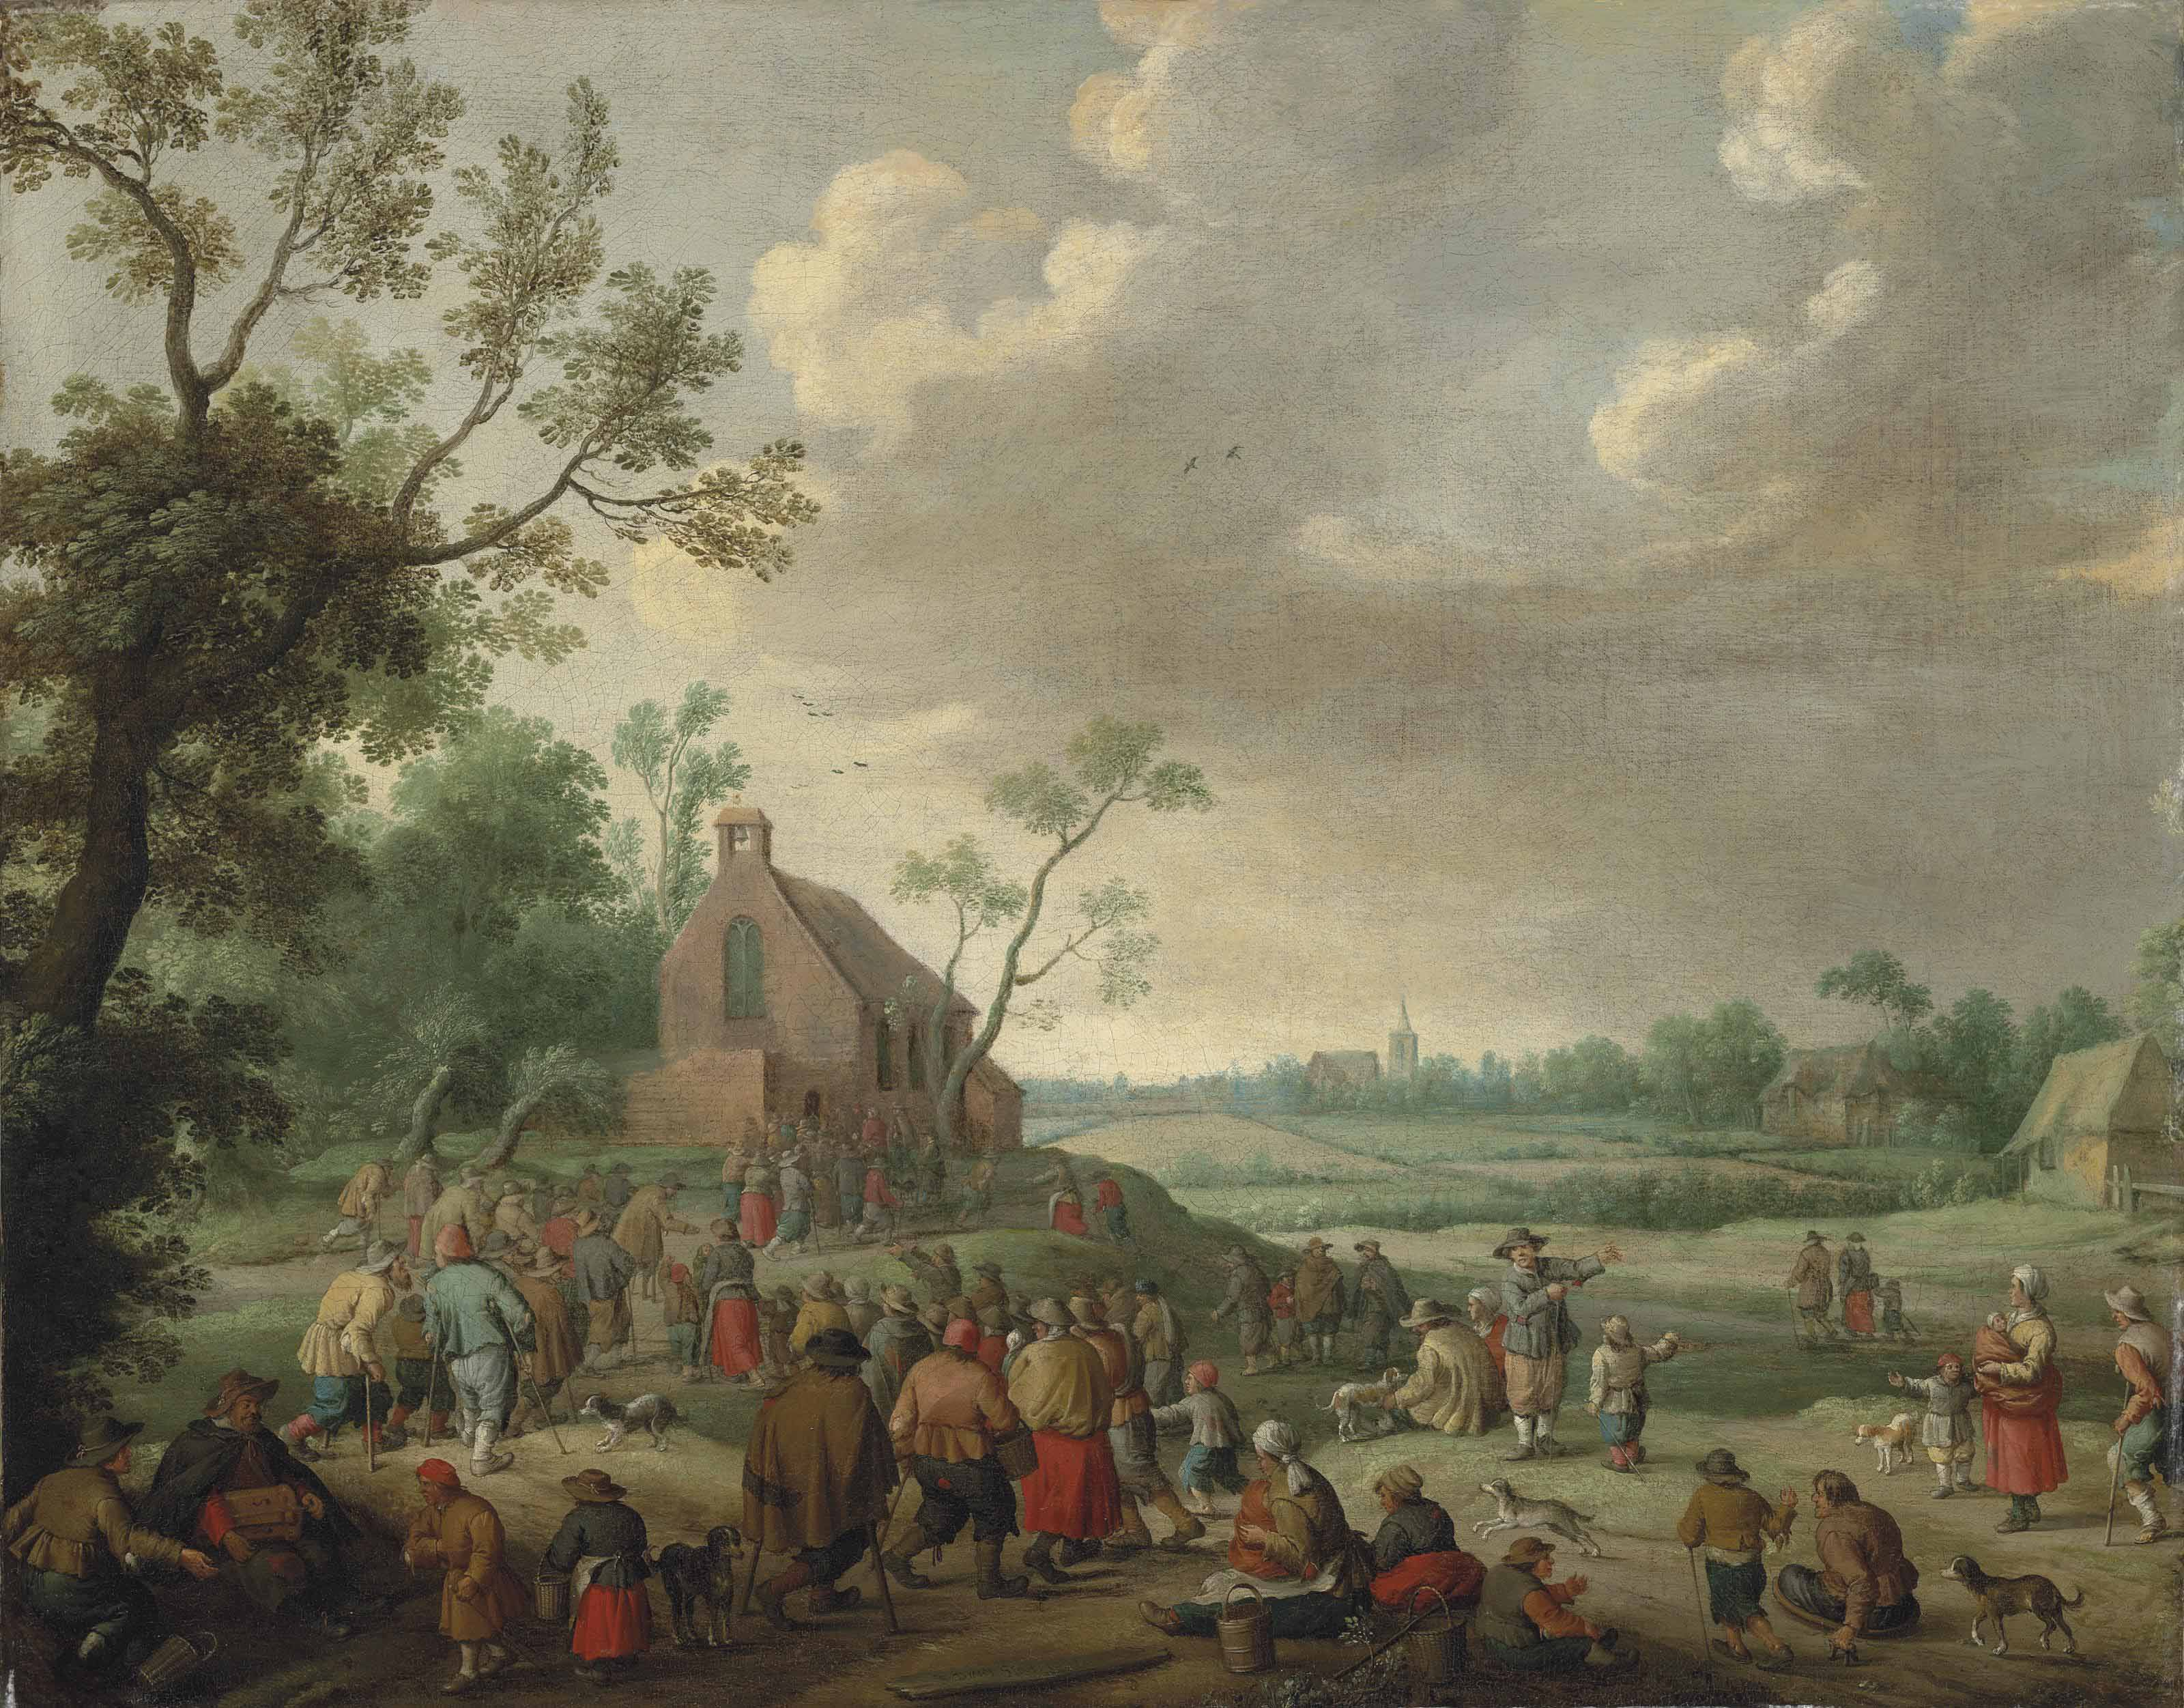 A landscape with figures conversing and playing music, a church beyond